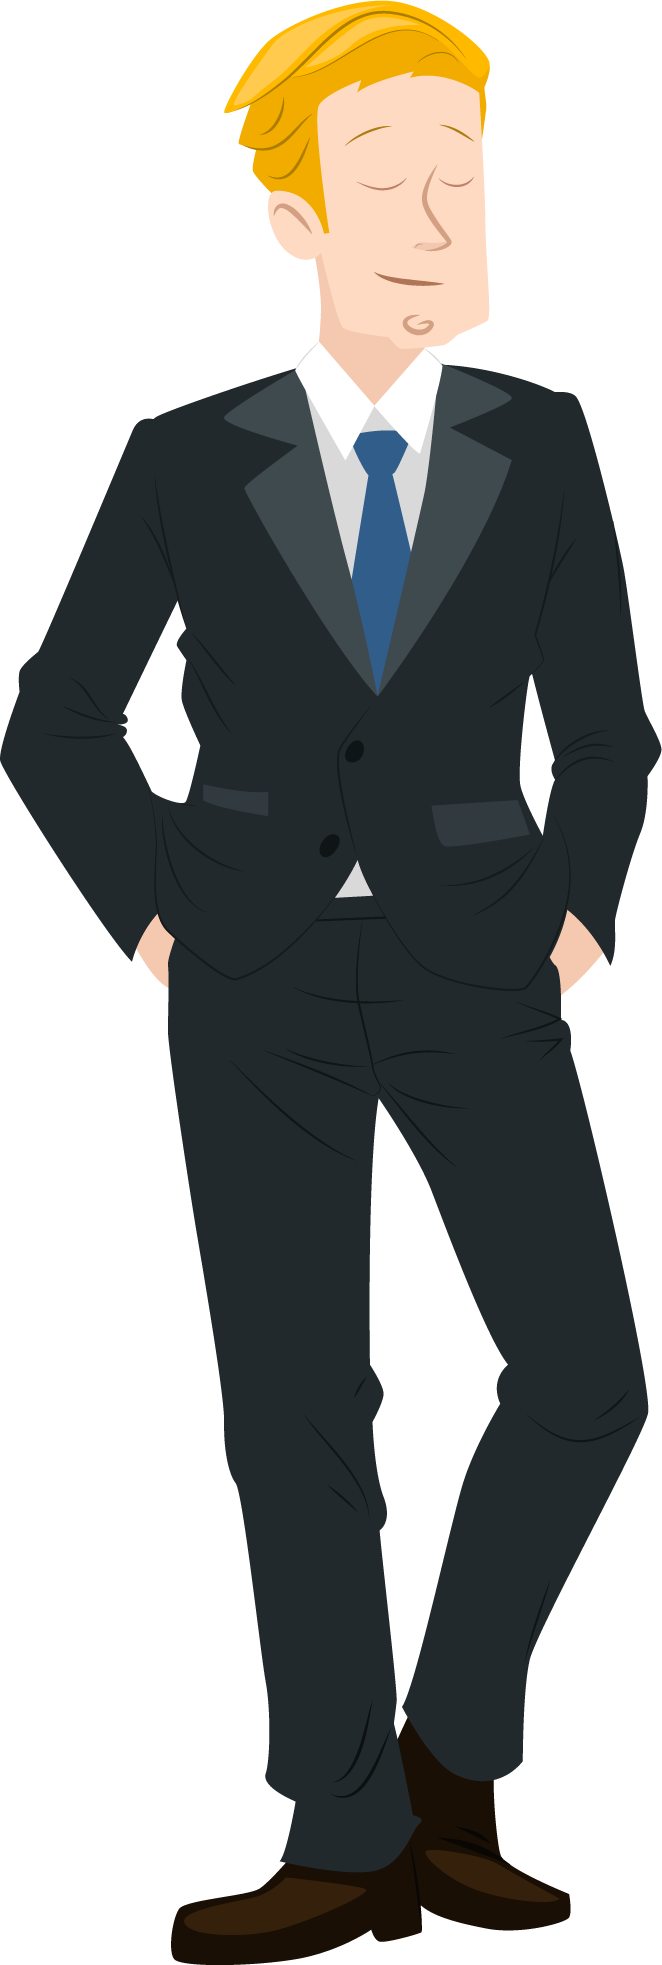 Mr clipart suited man.  collection of in